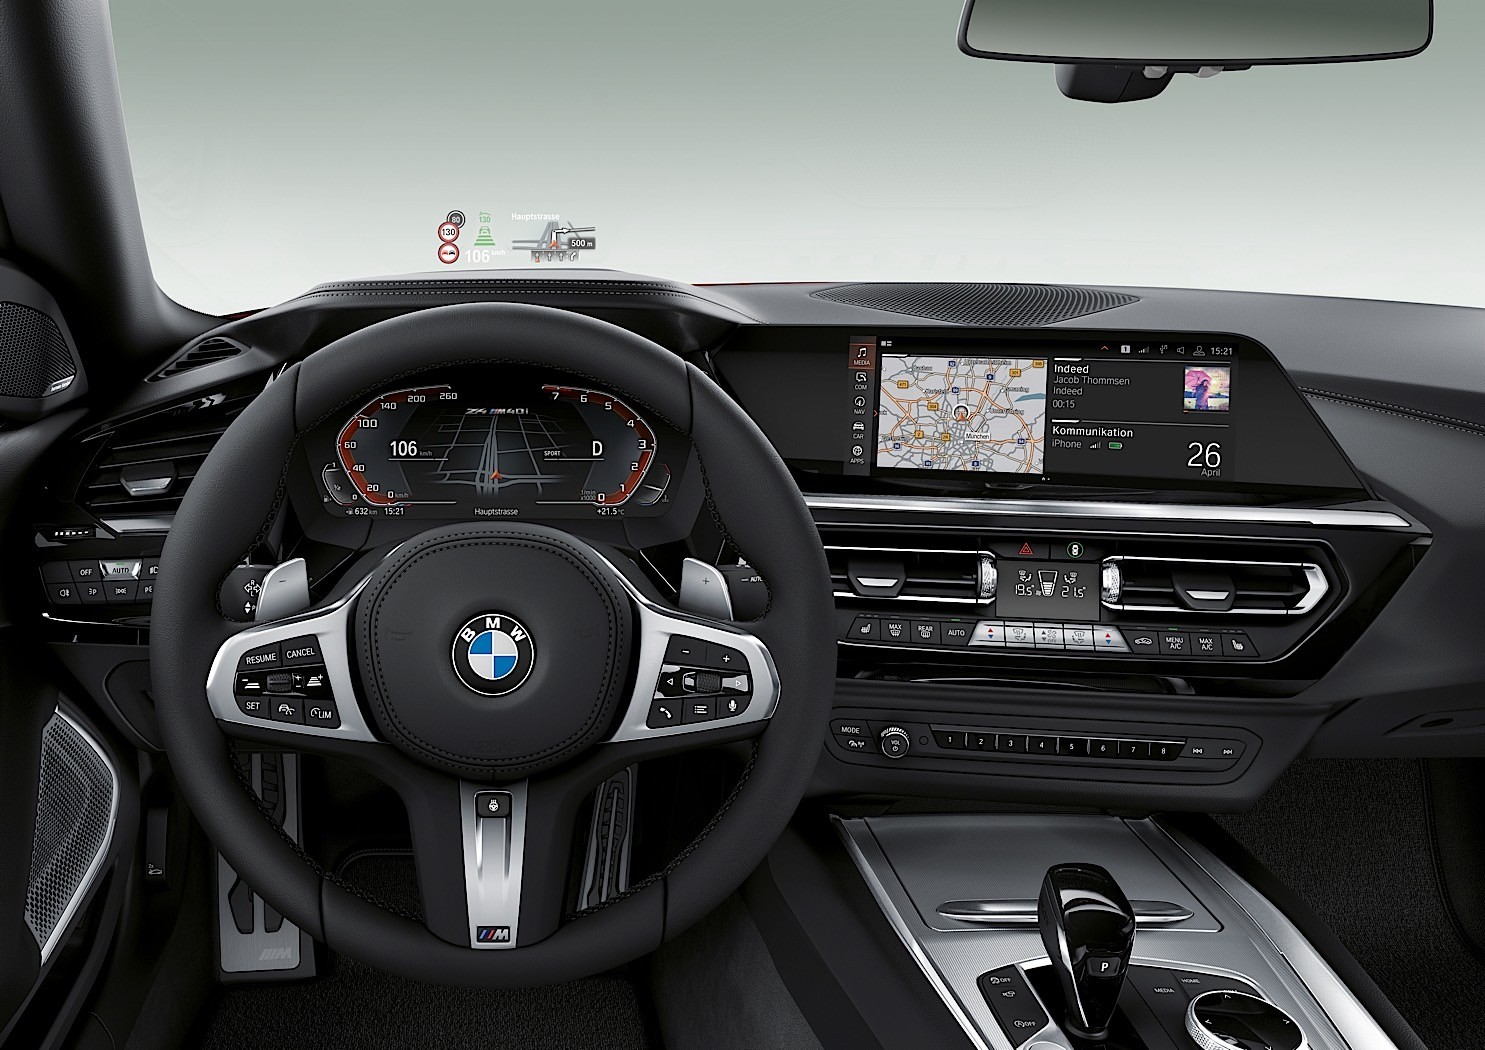 Here S The 2019 Bmw Z4 M40i Up Close And Personal Autoevolution